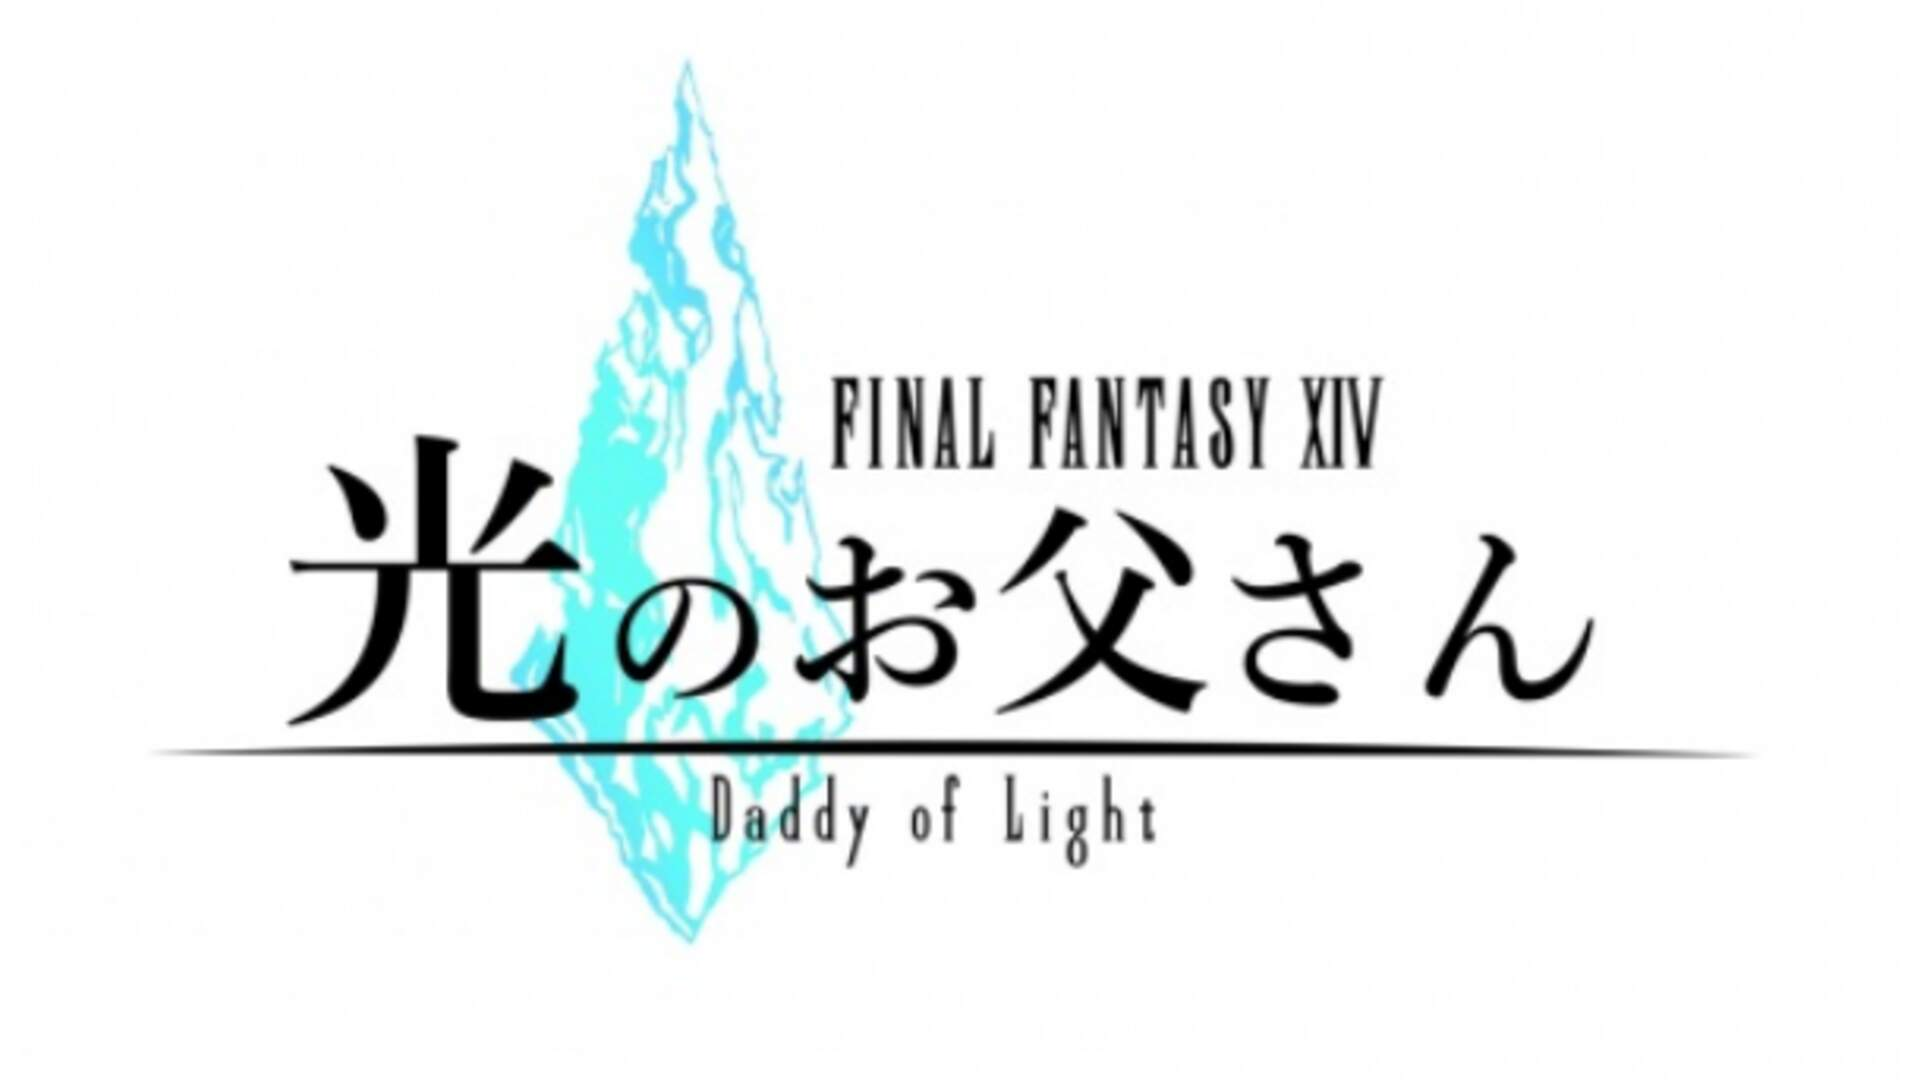 Final Fantasy XIV Inspires Japanese Drama, Daddy of Light